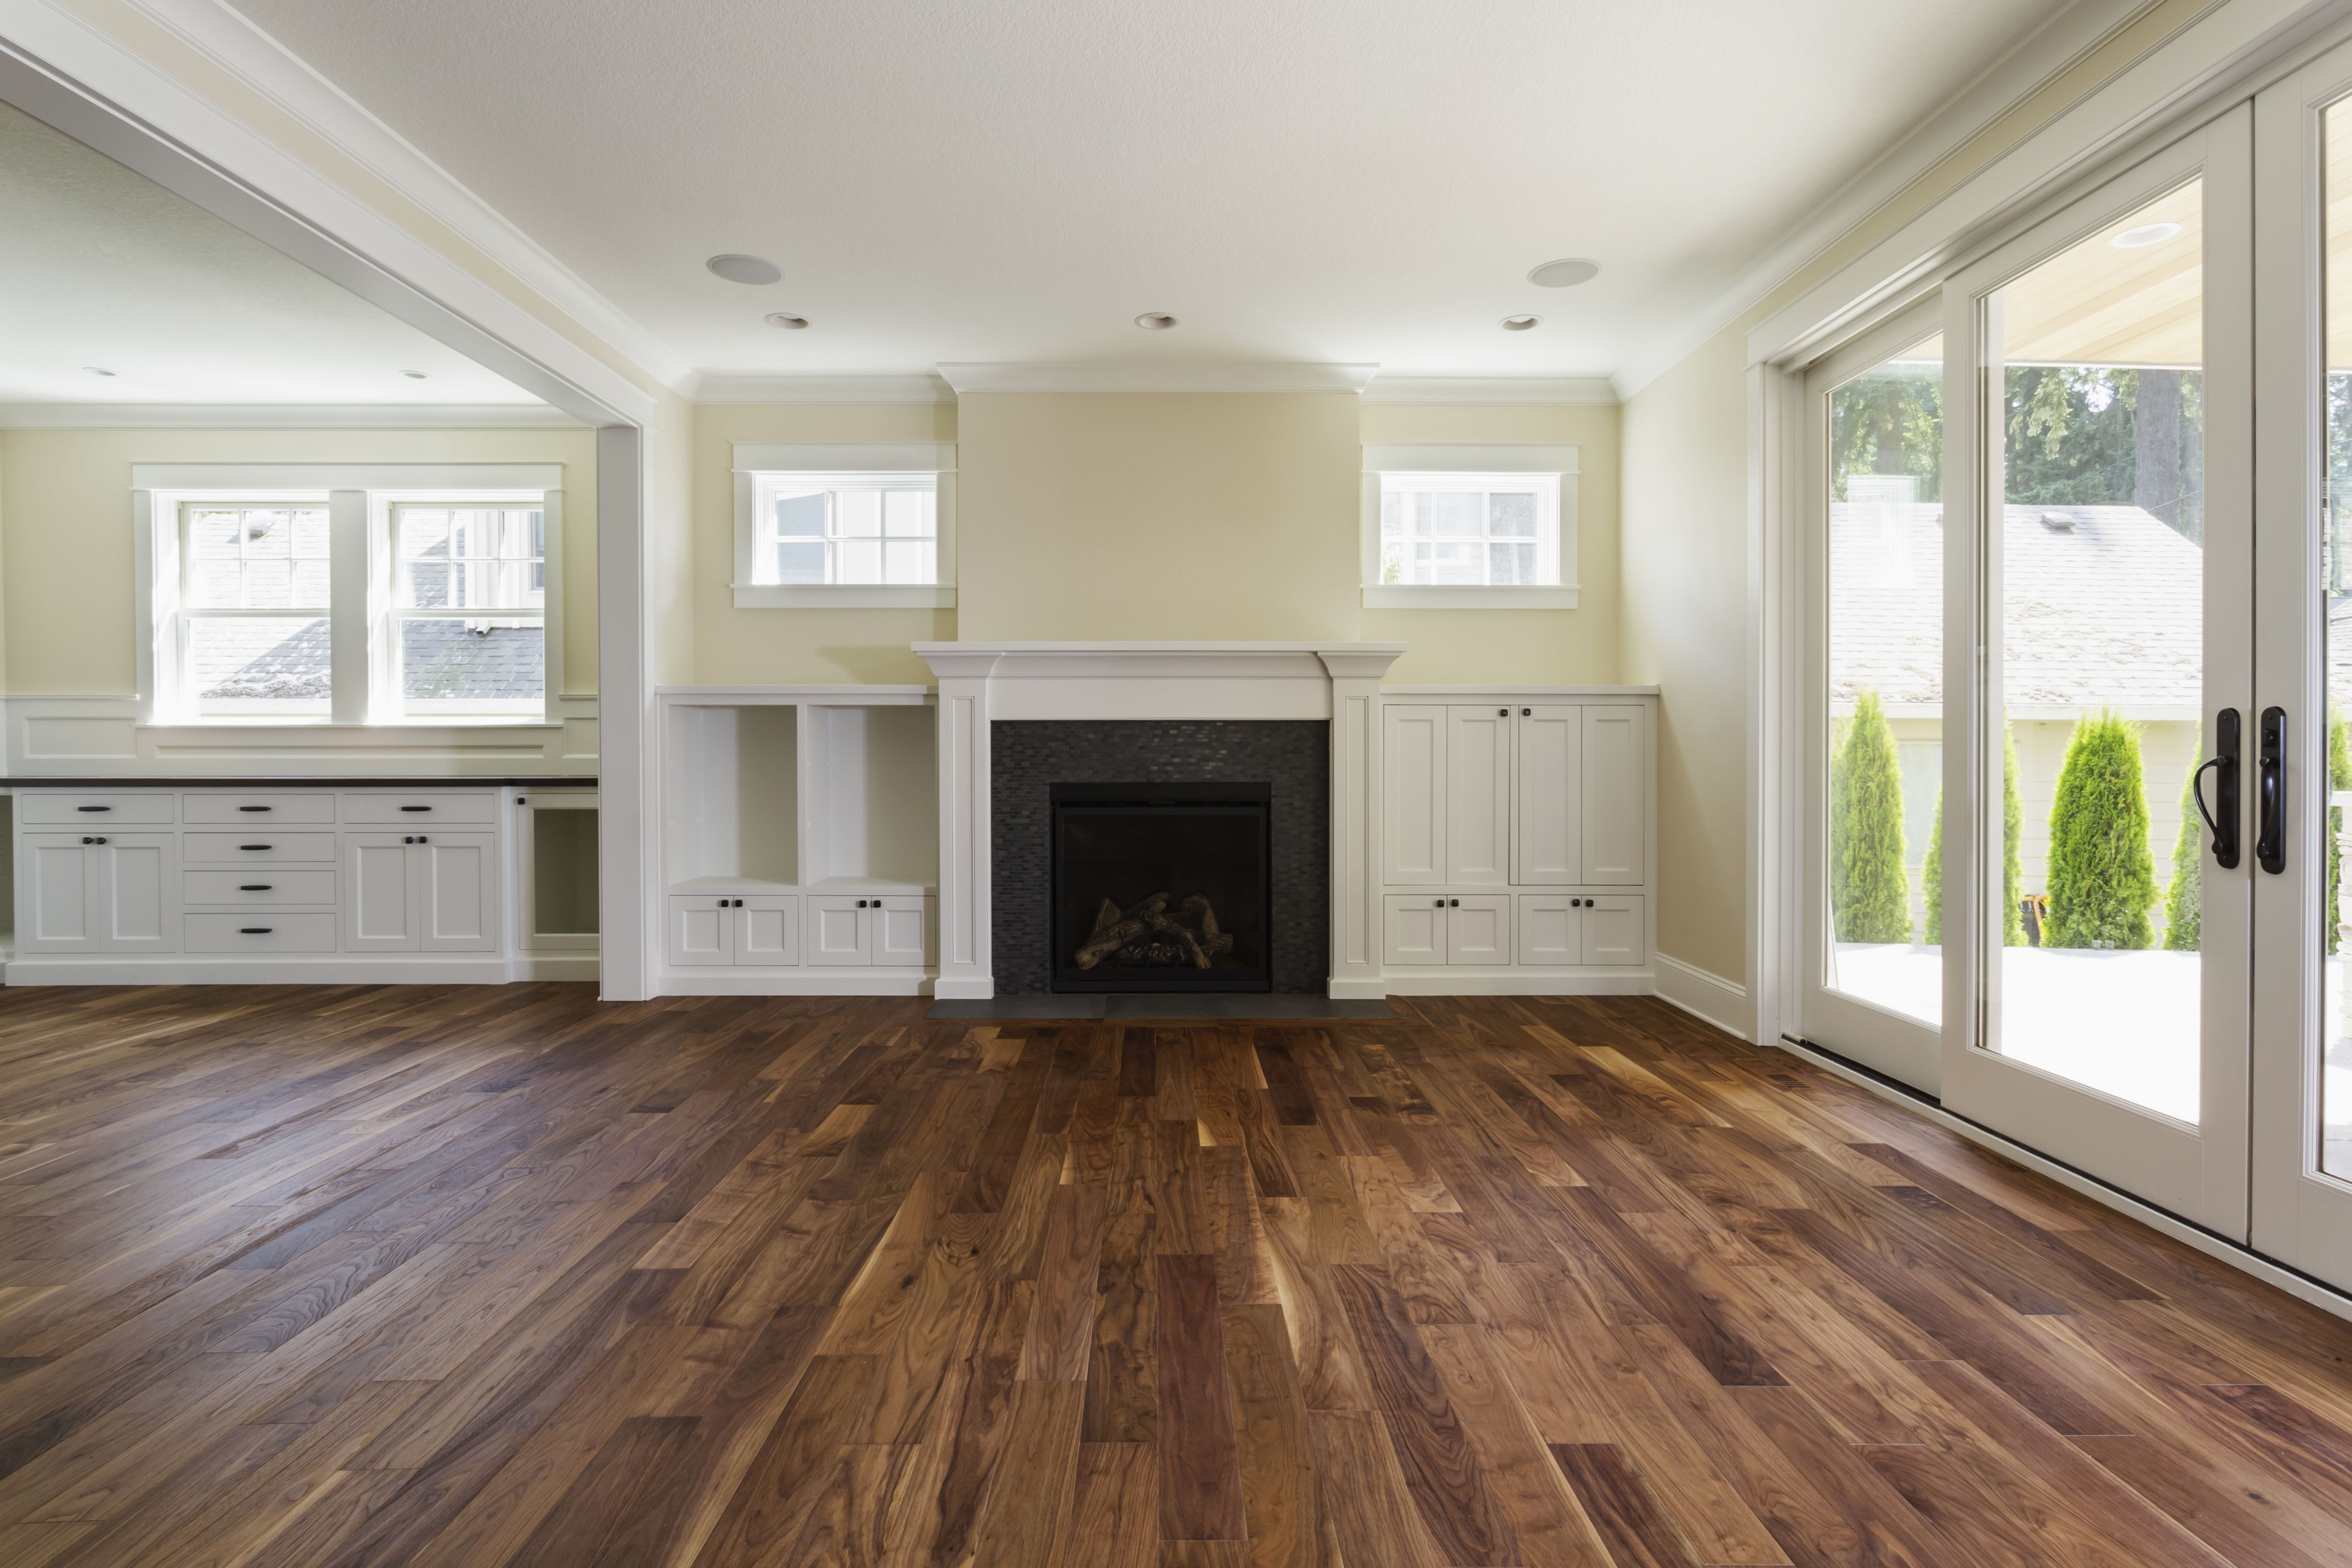 hardwood floor cleaning atlanta ga of the pros and cons of prefinished hardwood flooring in fireplace and built in shelves in living room 482143011 57bef8e33df78cc16e035397